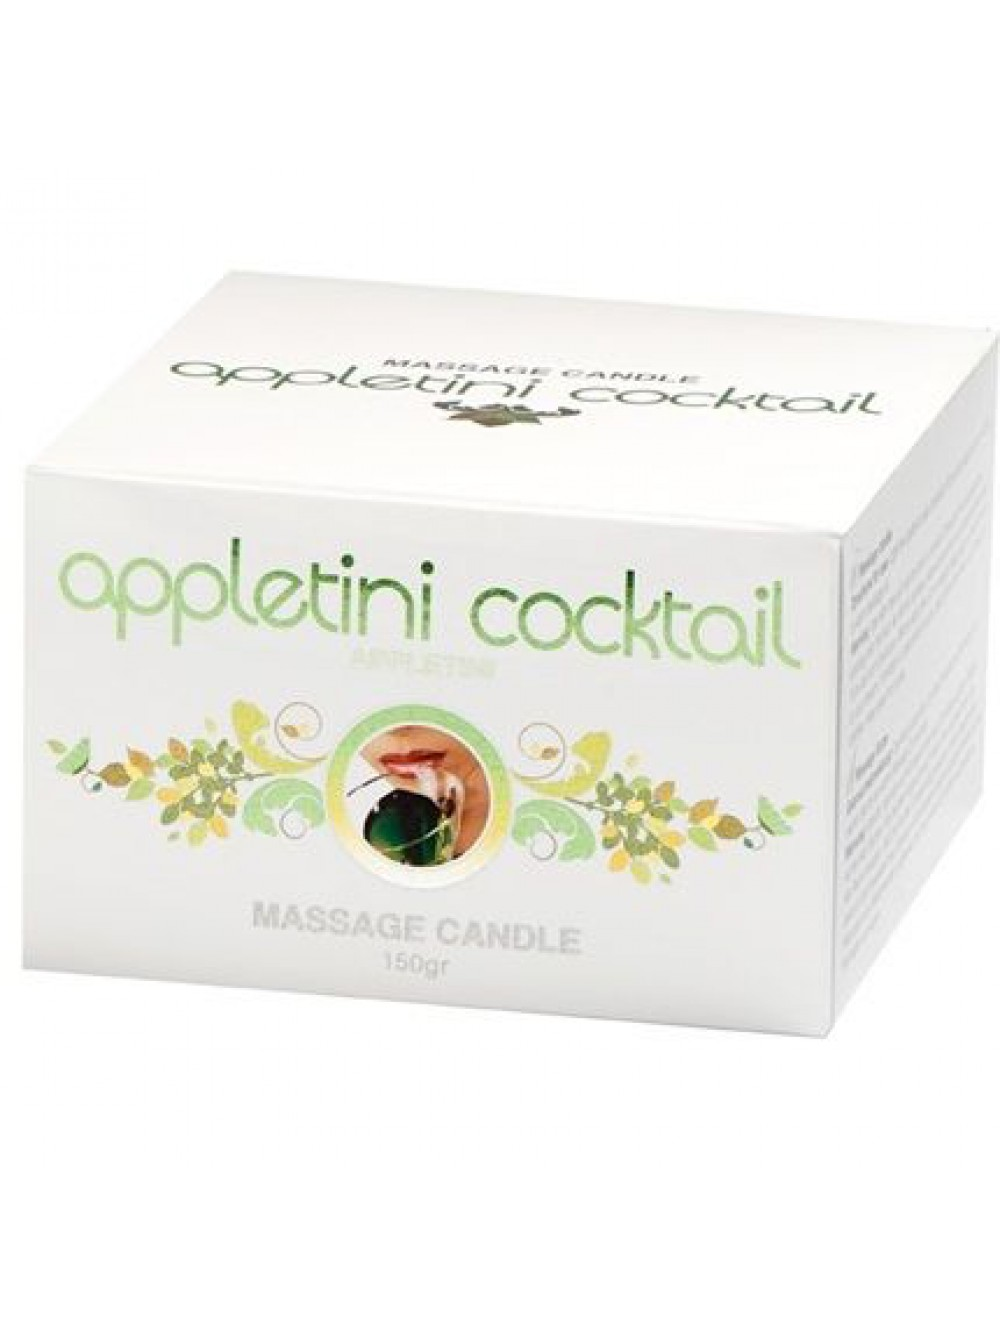 COBECO CANDLE APPLETINI COCKTAIL 150GR